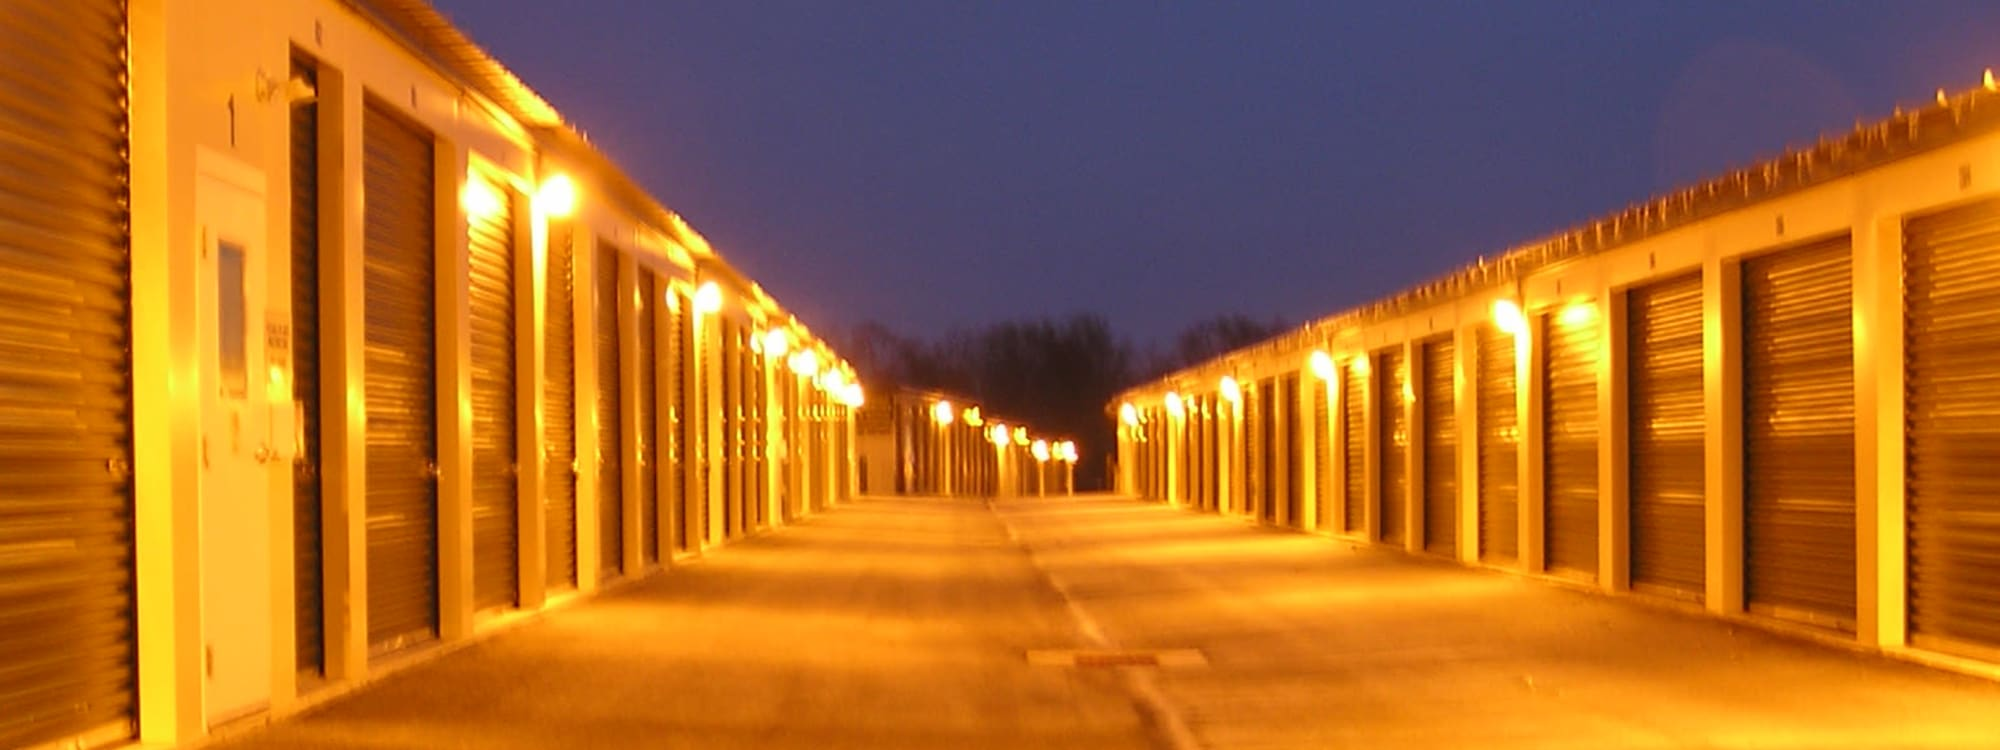 Night time image of storage units at Coventry Self Storage in Coventry, Connecticut